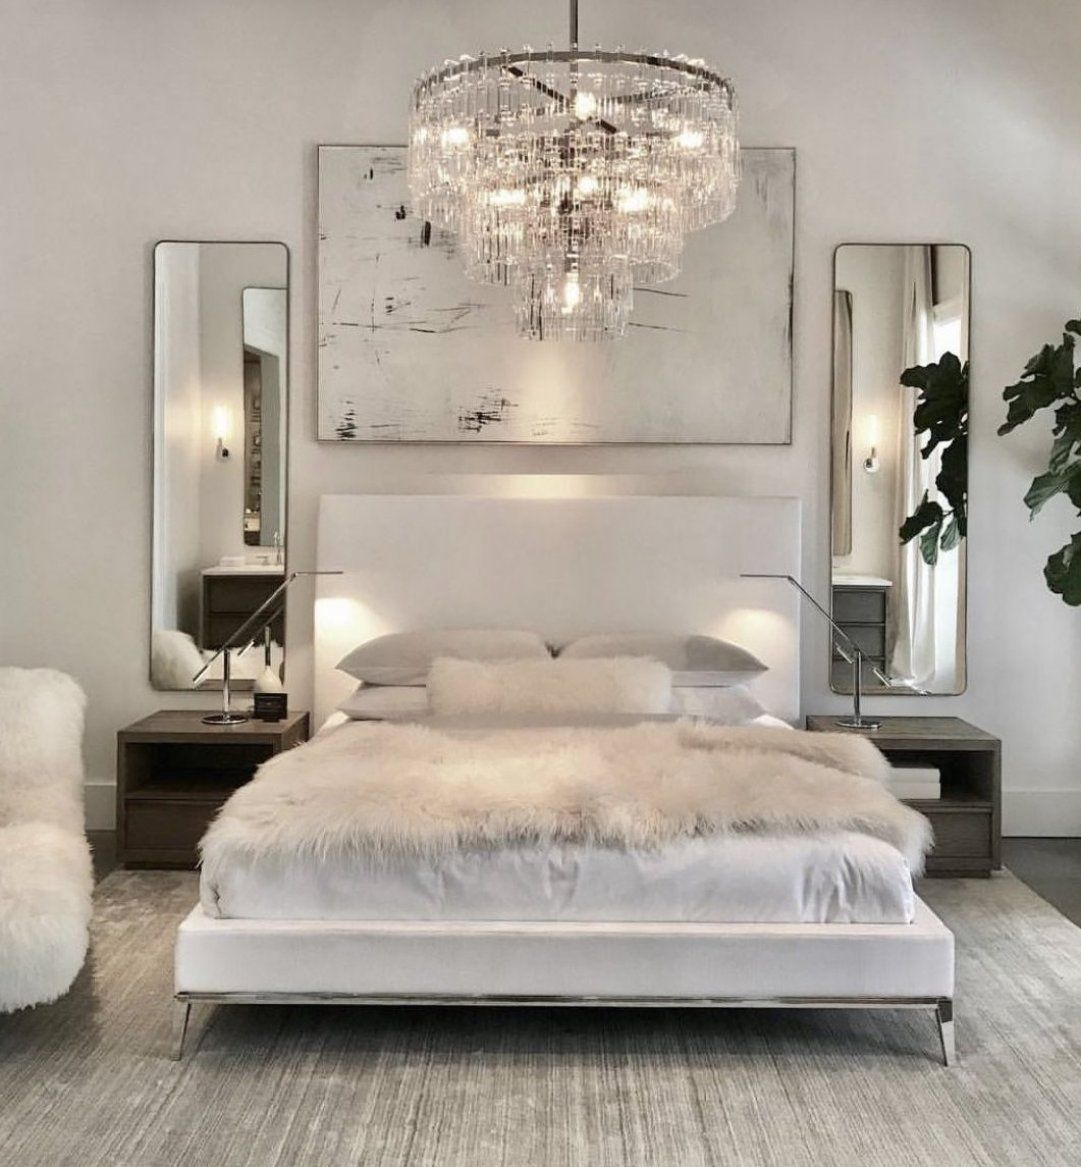 Luxury bedroom with white bed  white walls  chrome assents  crystal chandaleer  and sheepskin blanket  cozybedroom  glamdecor  dreambedroom  bedroomgoals #blackapartmentdecor #apartmentdecor